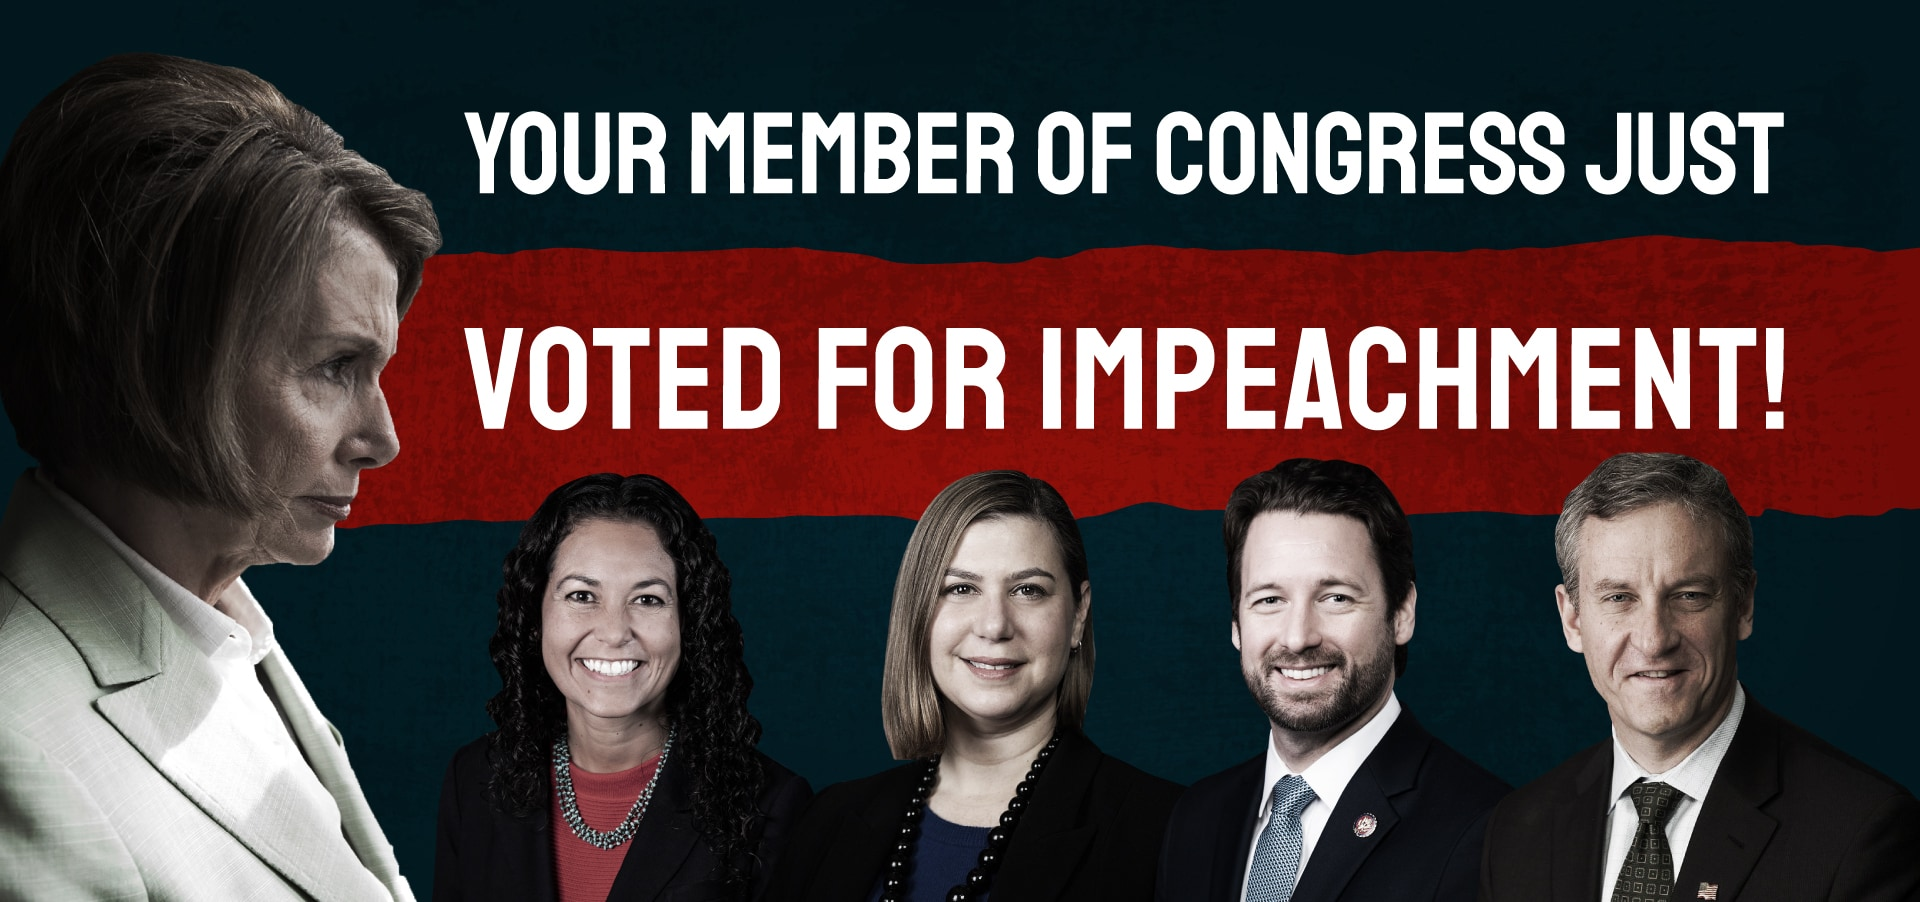 CLF Launches Digital Ads Slamming All 29 Trump Seat Democrats Who Voted For Impeachment